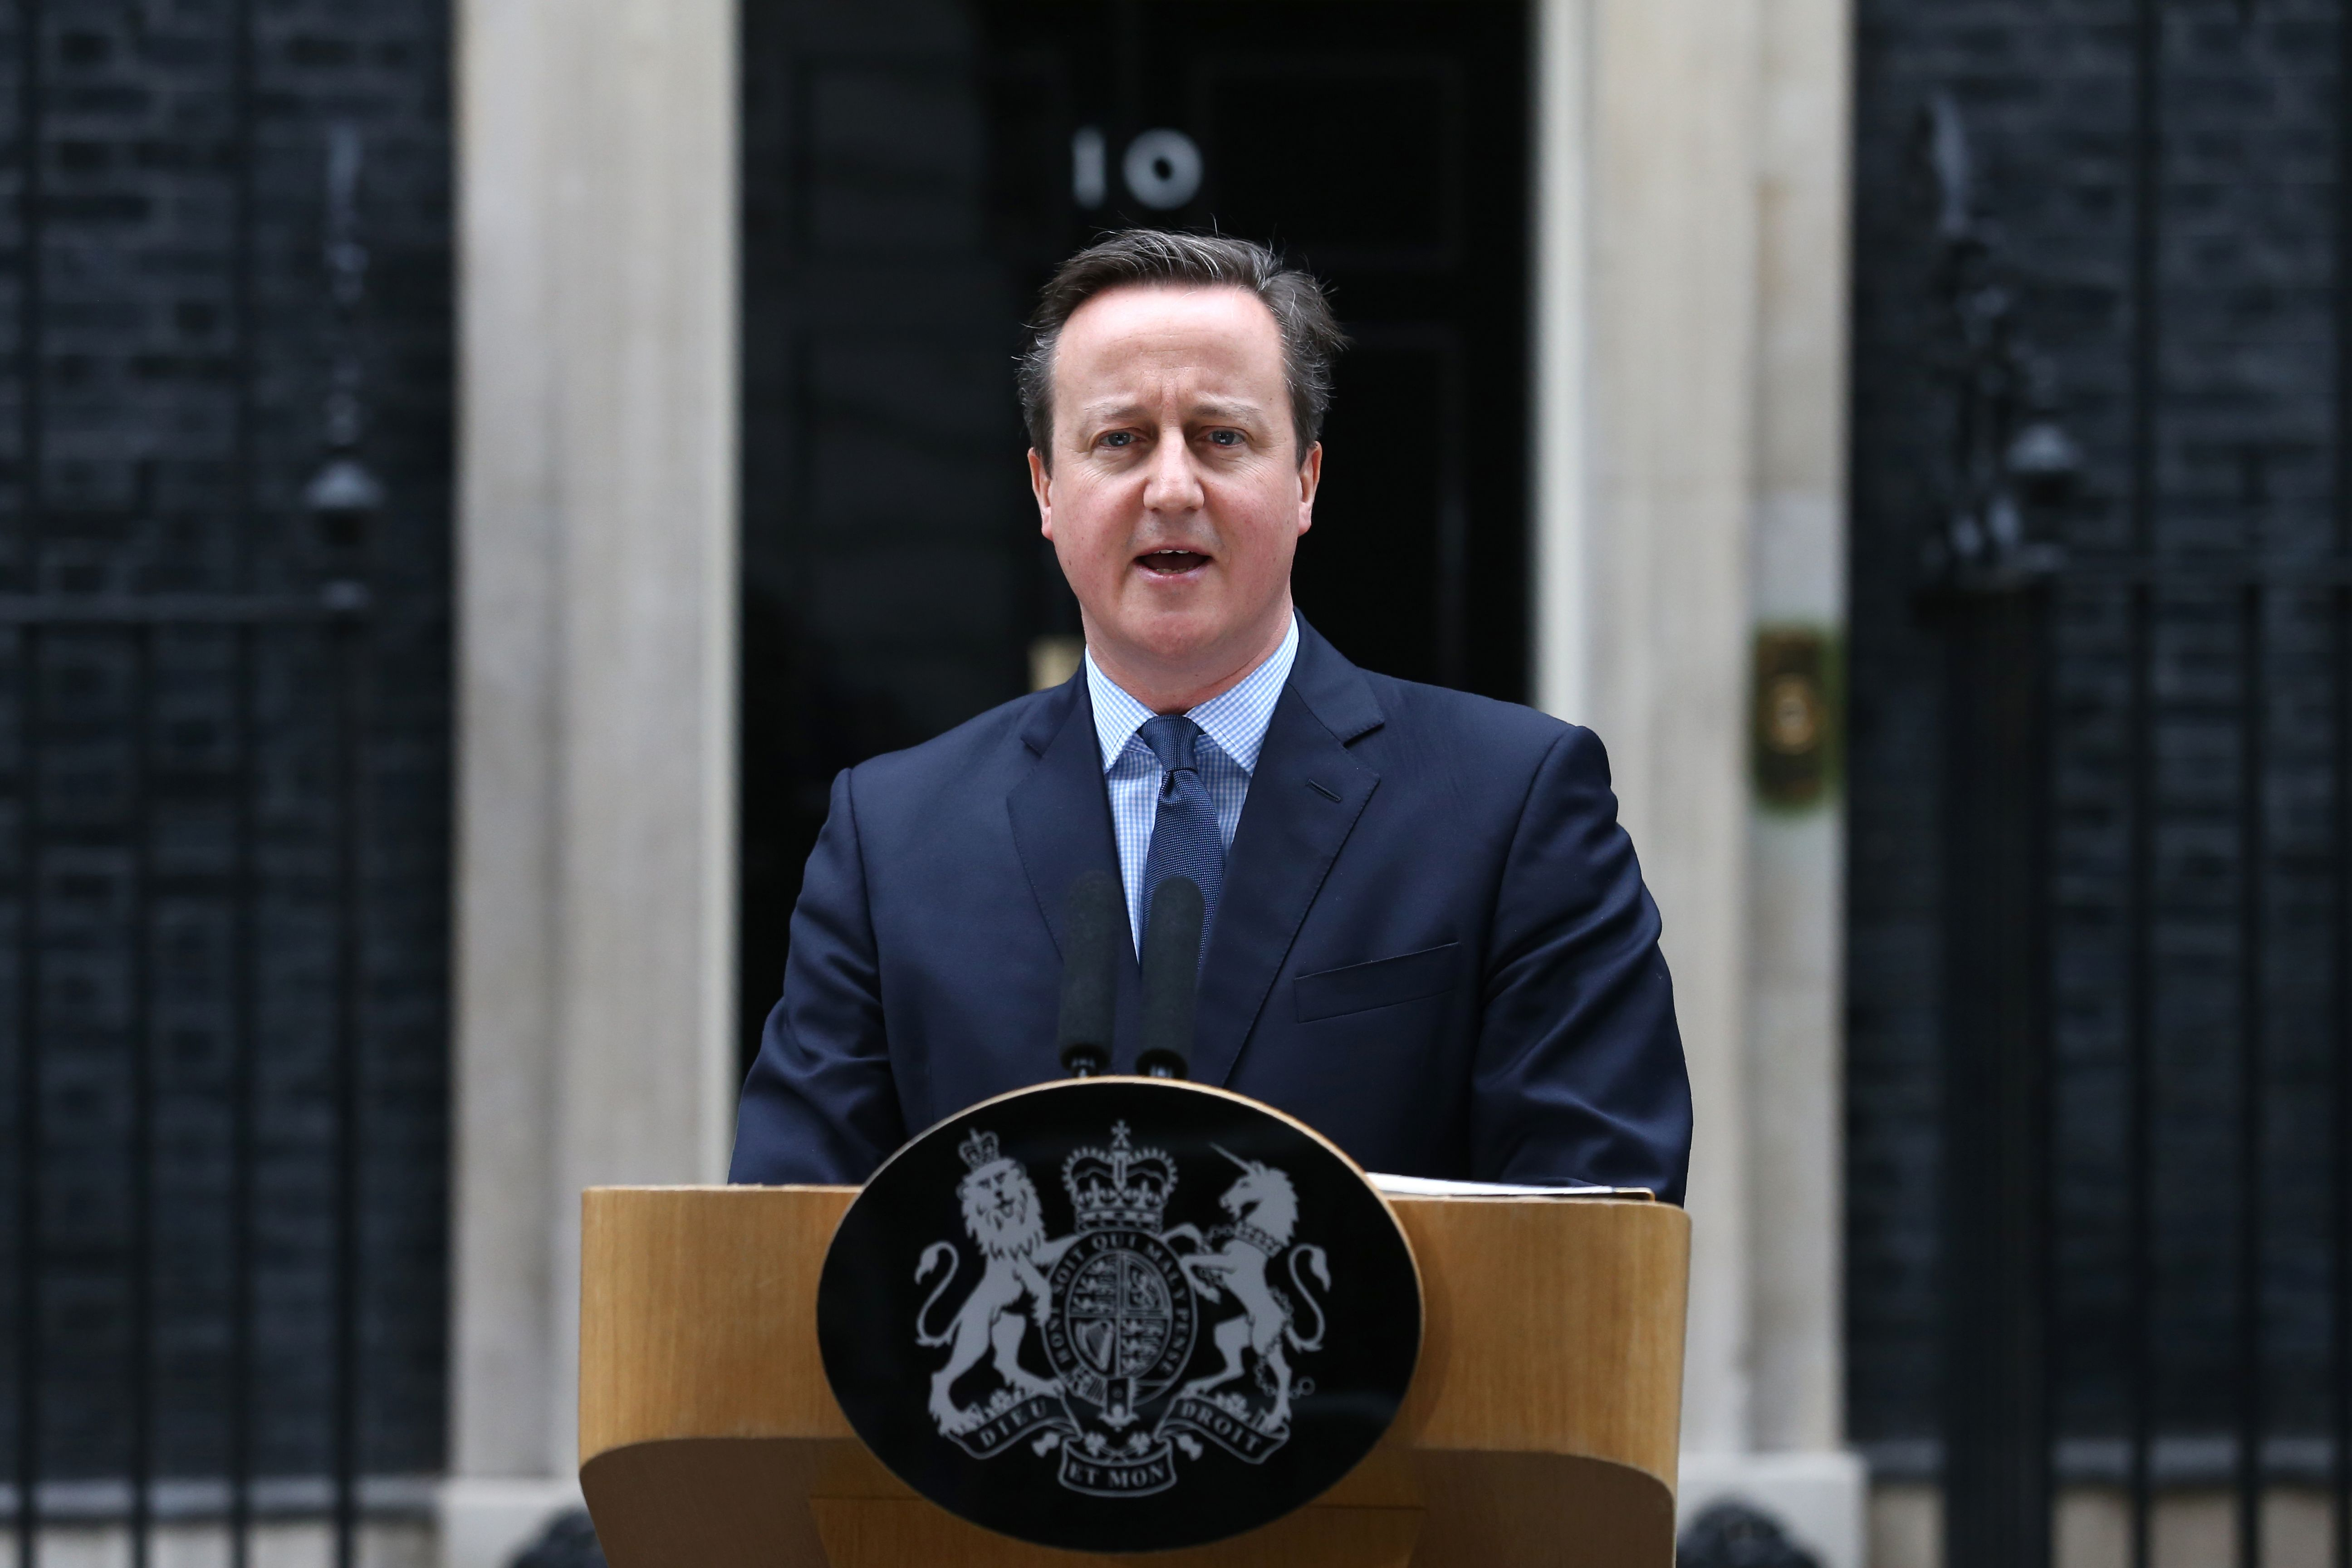 David Cameron makes a statement to the media outside 10 Downing Street in London on Feb. 20, 2016.